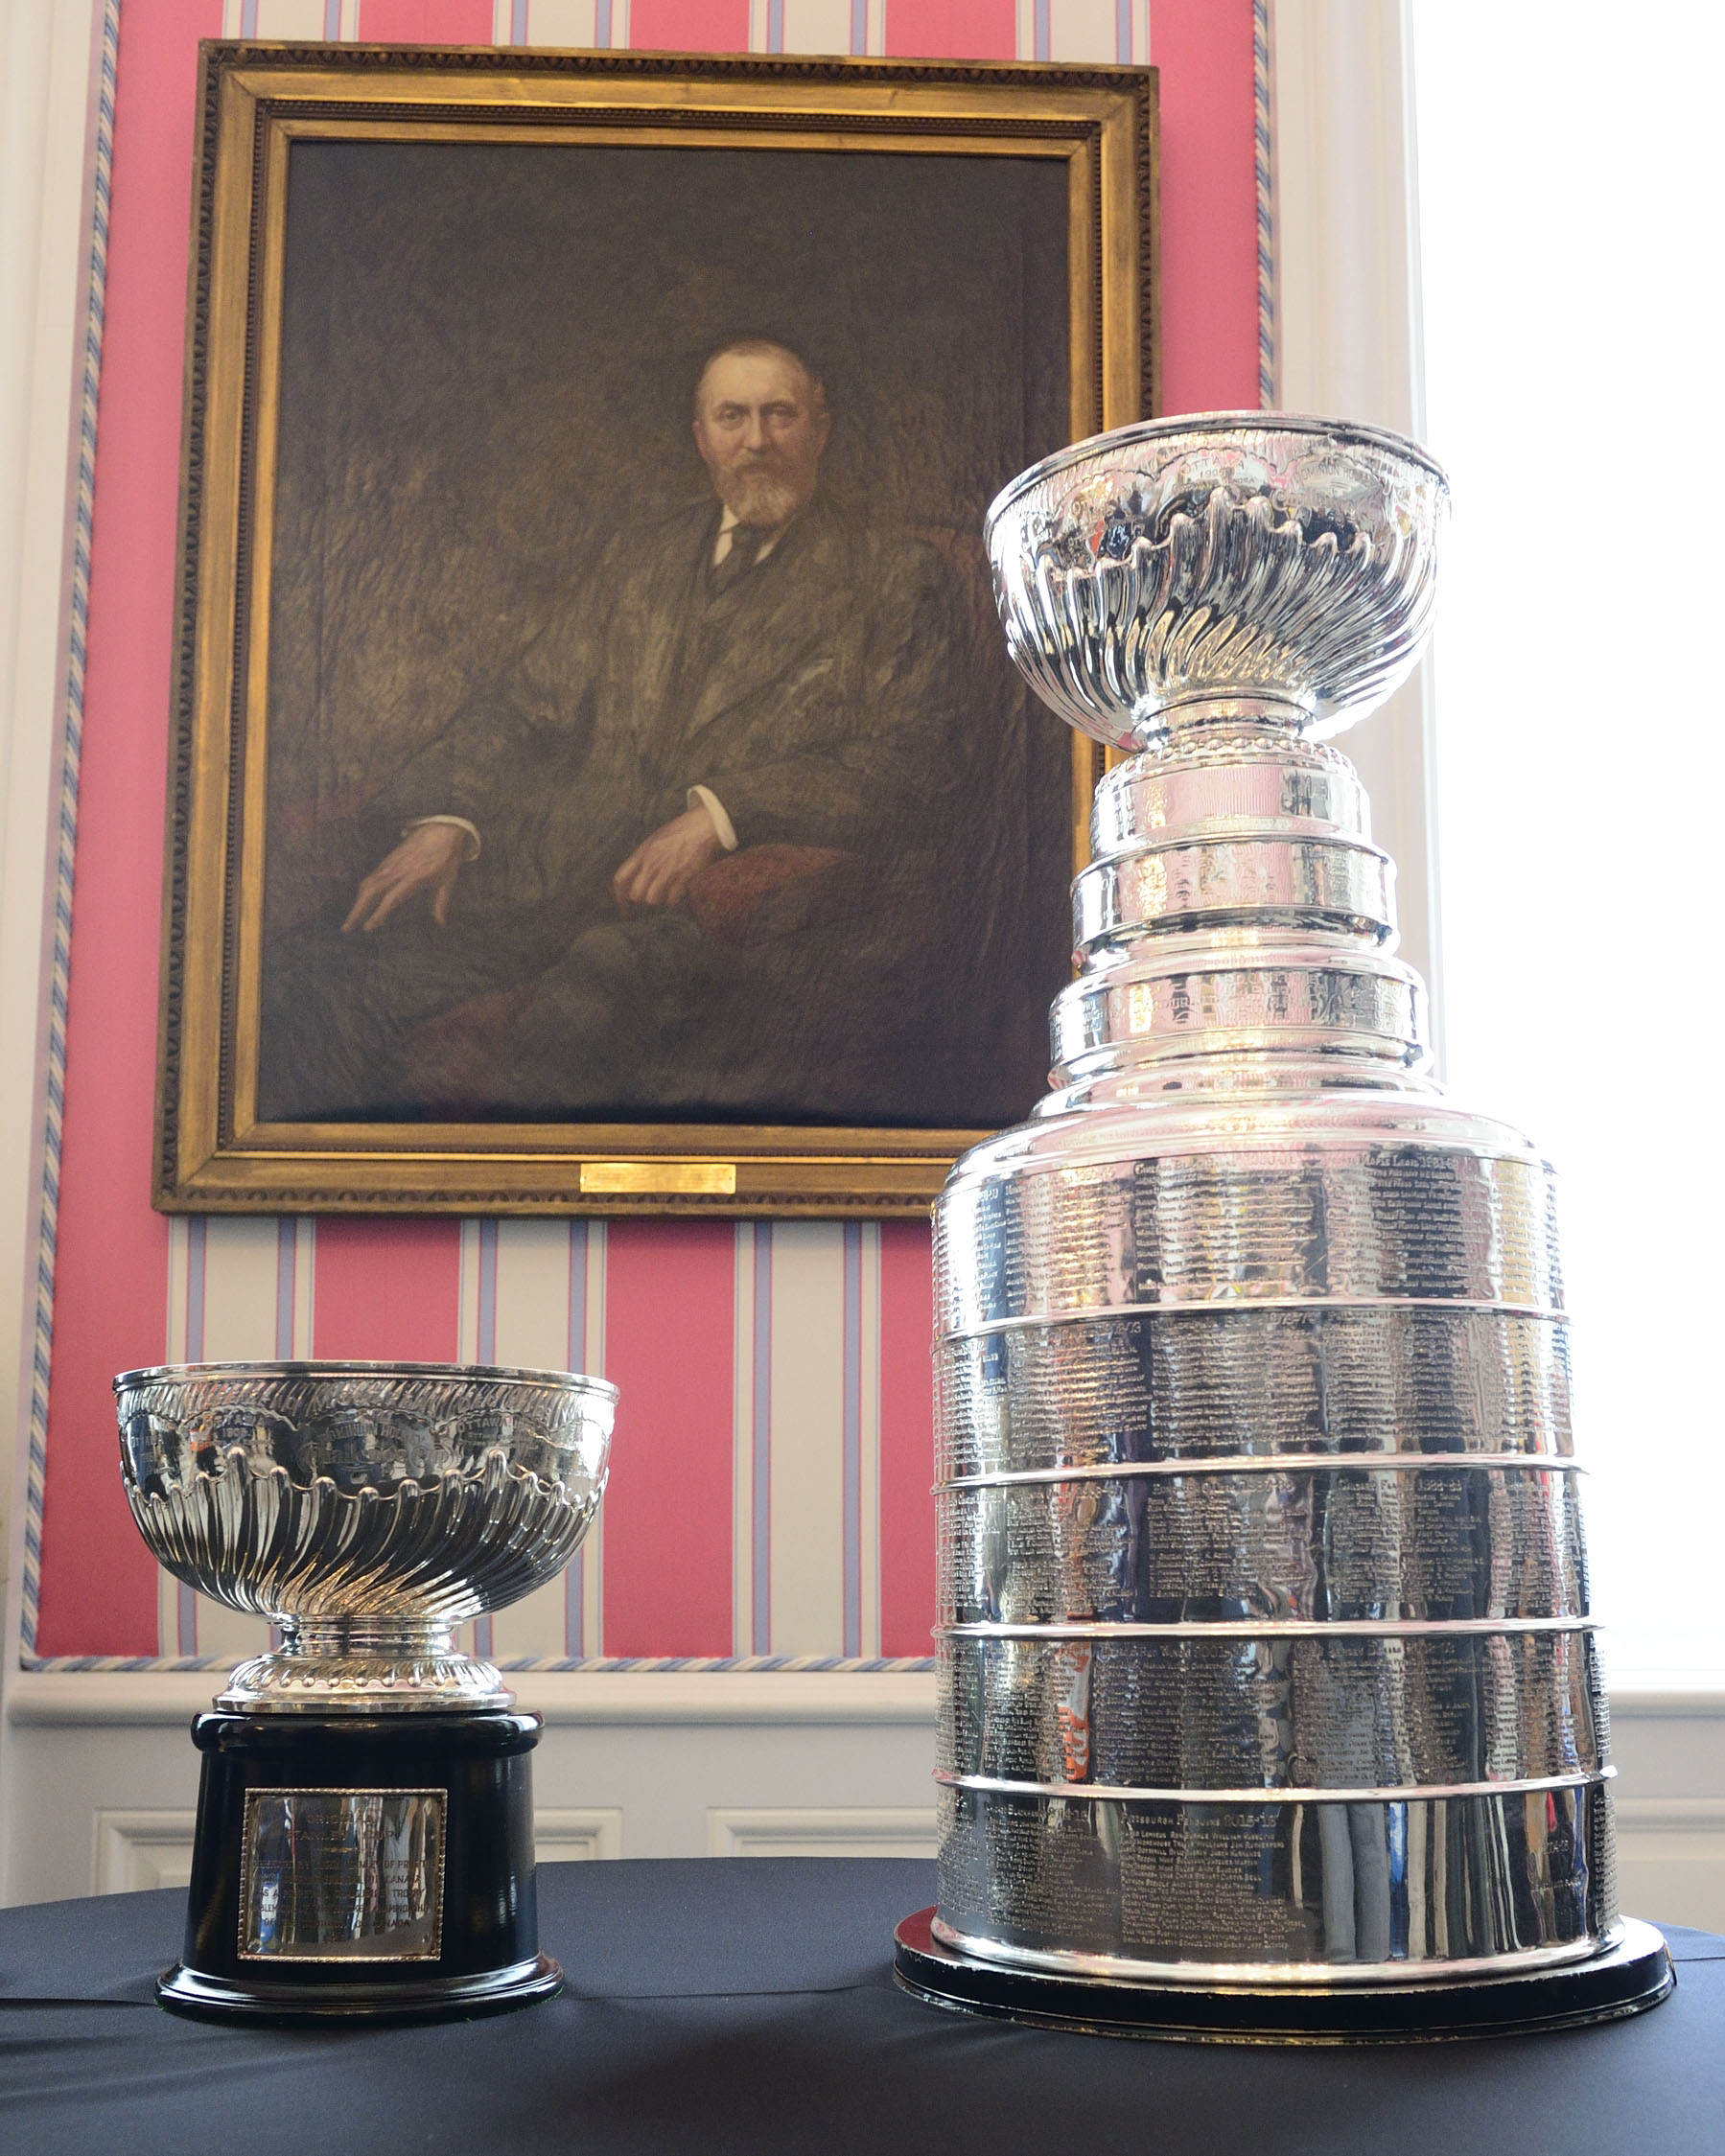 The Stanley Cup, notably the oldest trophy competed for by professional athletes in North America, was donated in 1892 by Lord Stanley of Preston, who was appointed as Canada's 